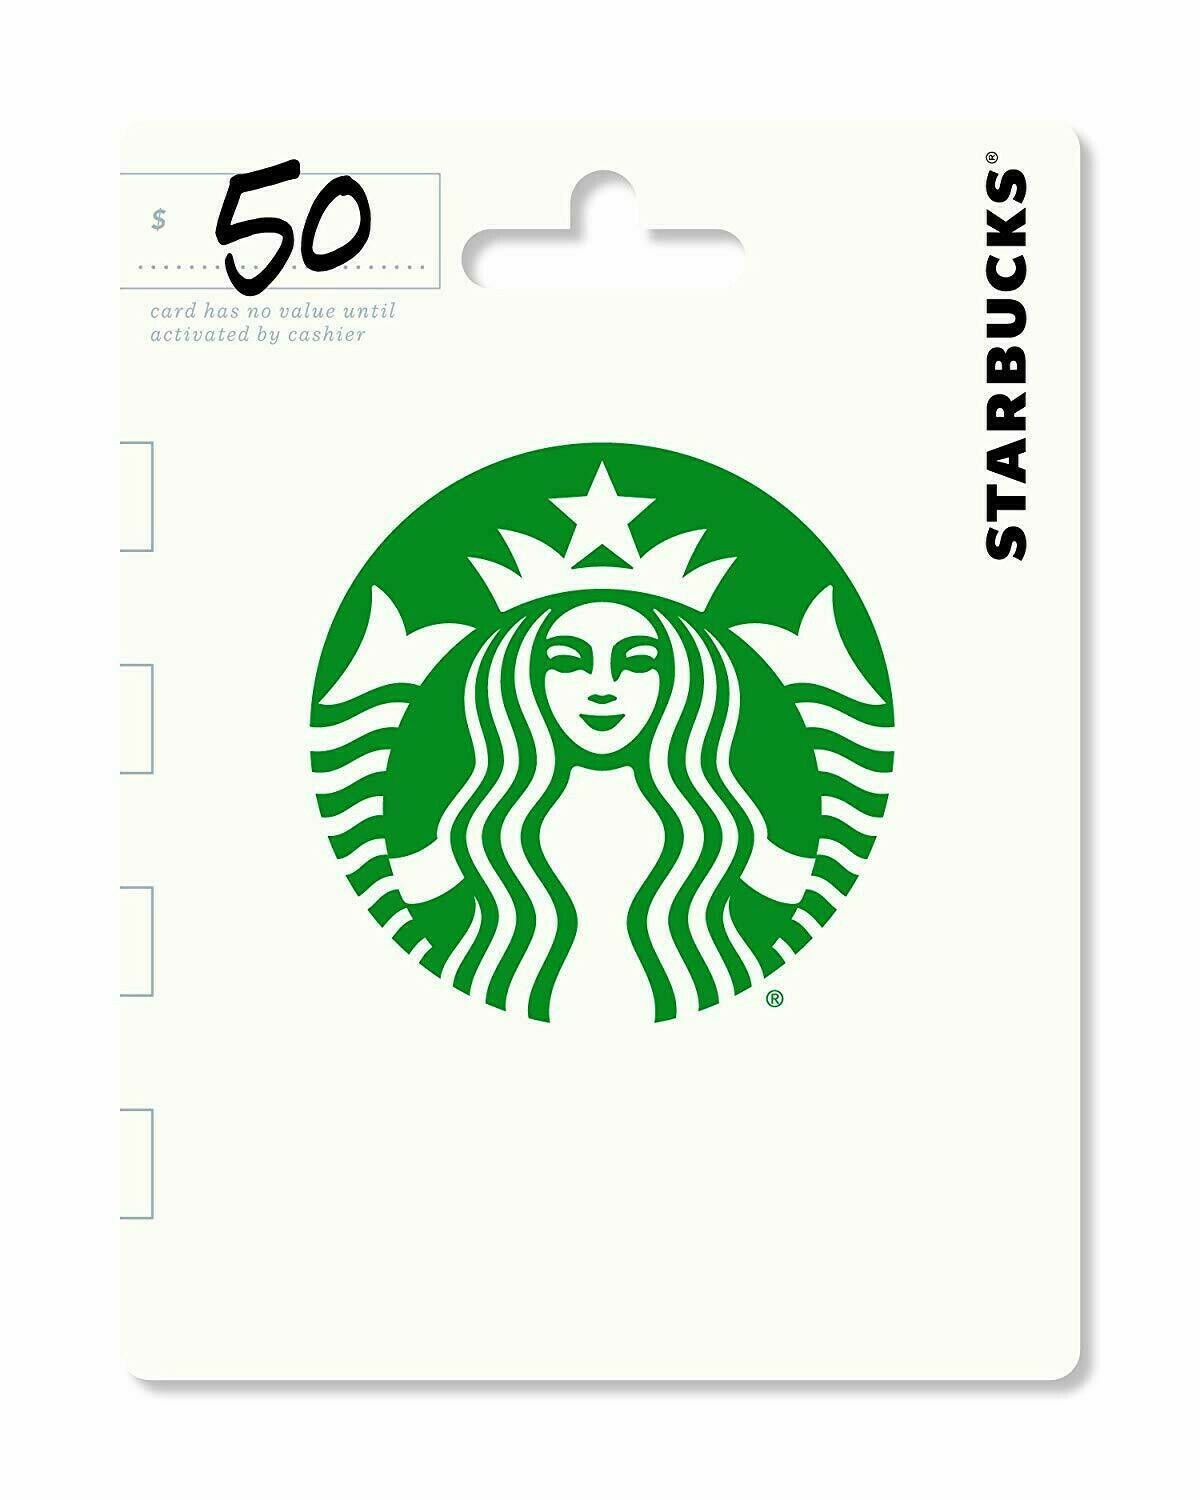 New Starbucks 50 Gift Card Loaded, Wrapped, Ready To Give FAST Free Shipping - $46.00